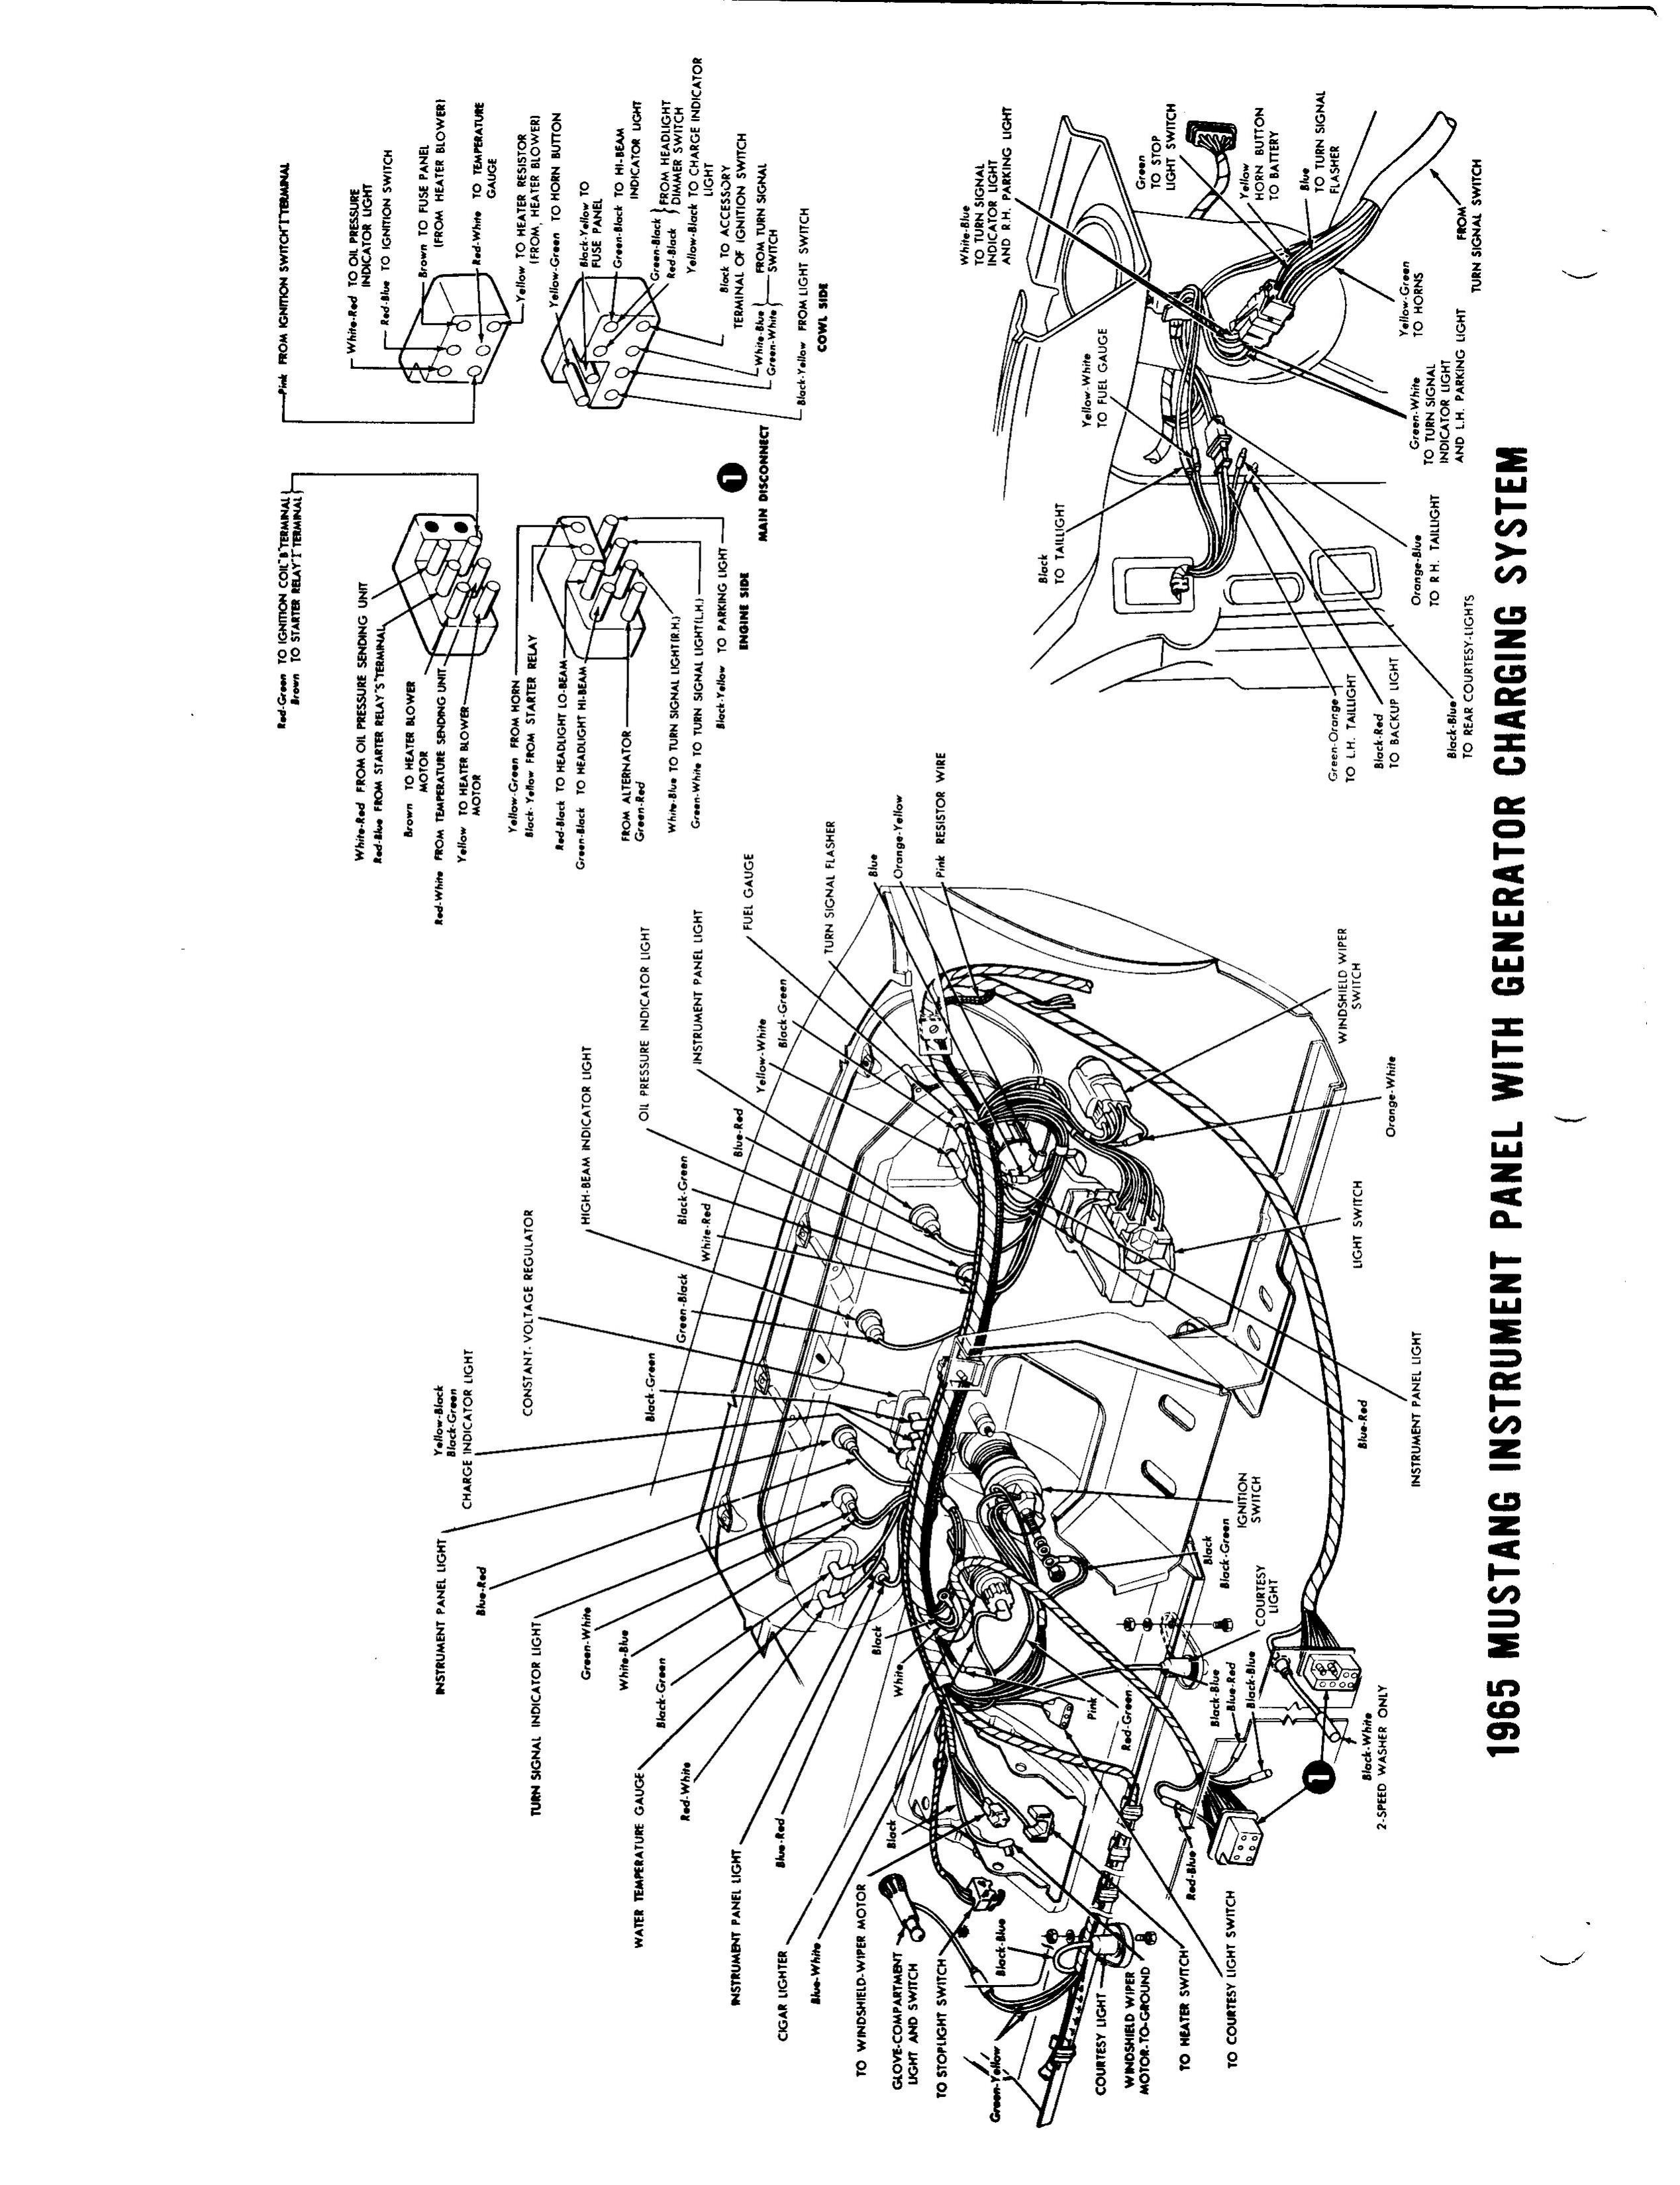 1965 Mustang Wiring Diagrams http://www.allfordmustangs.com/forums/classic-tech/289407-1964-1965-wiring-diagram-manual.html